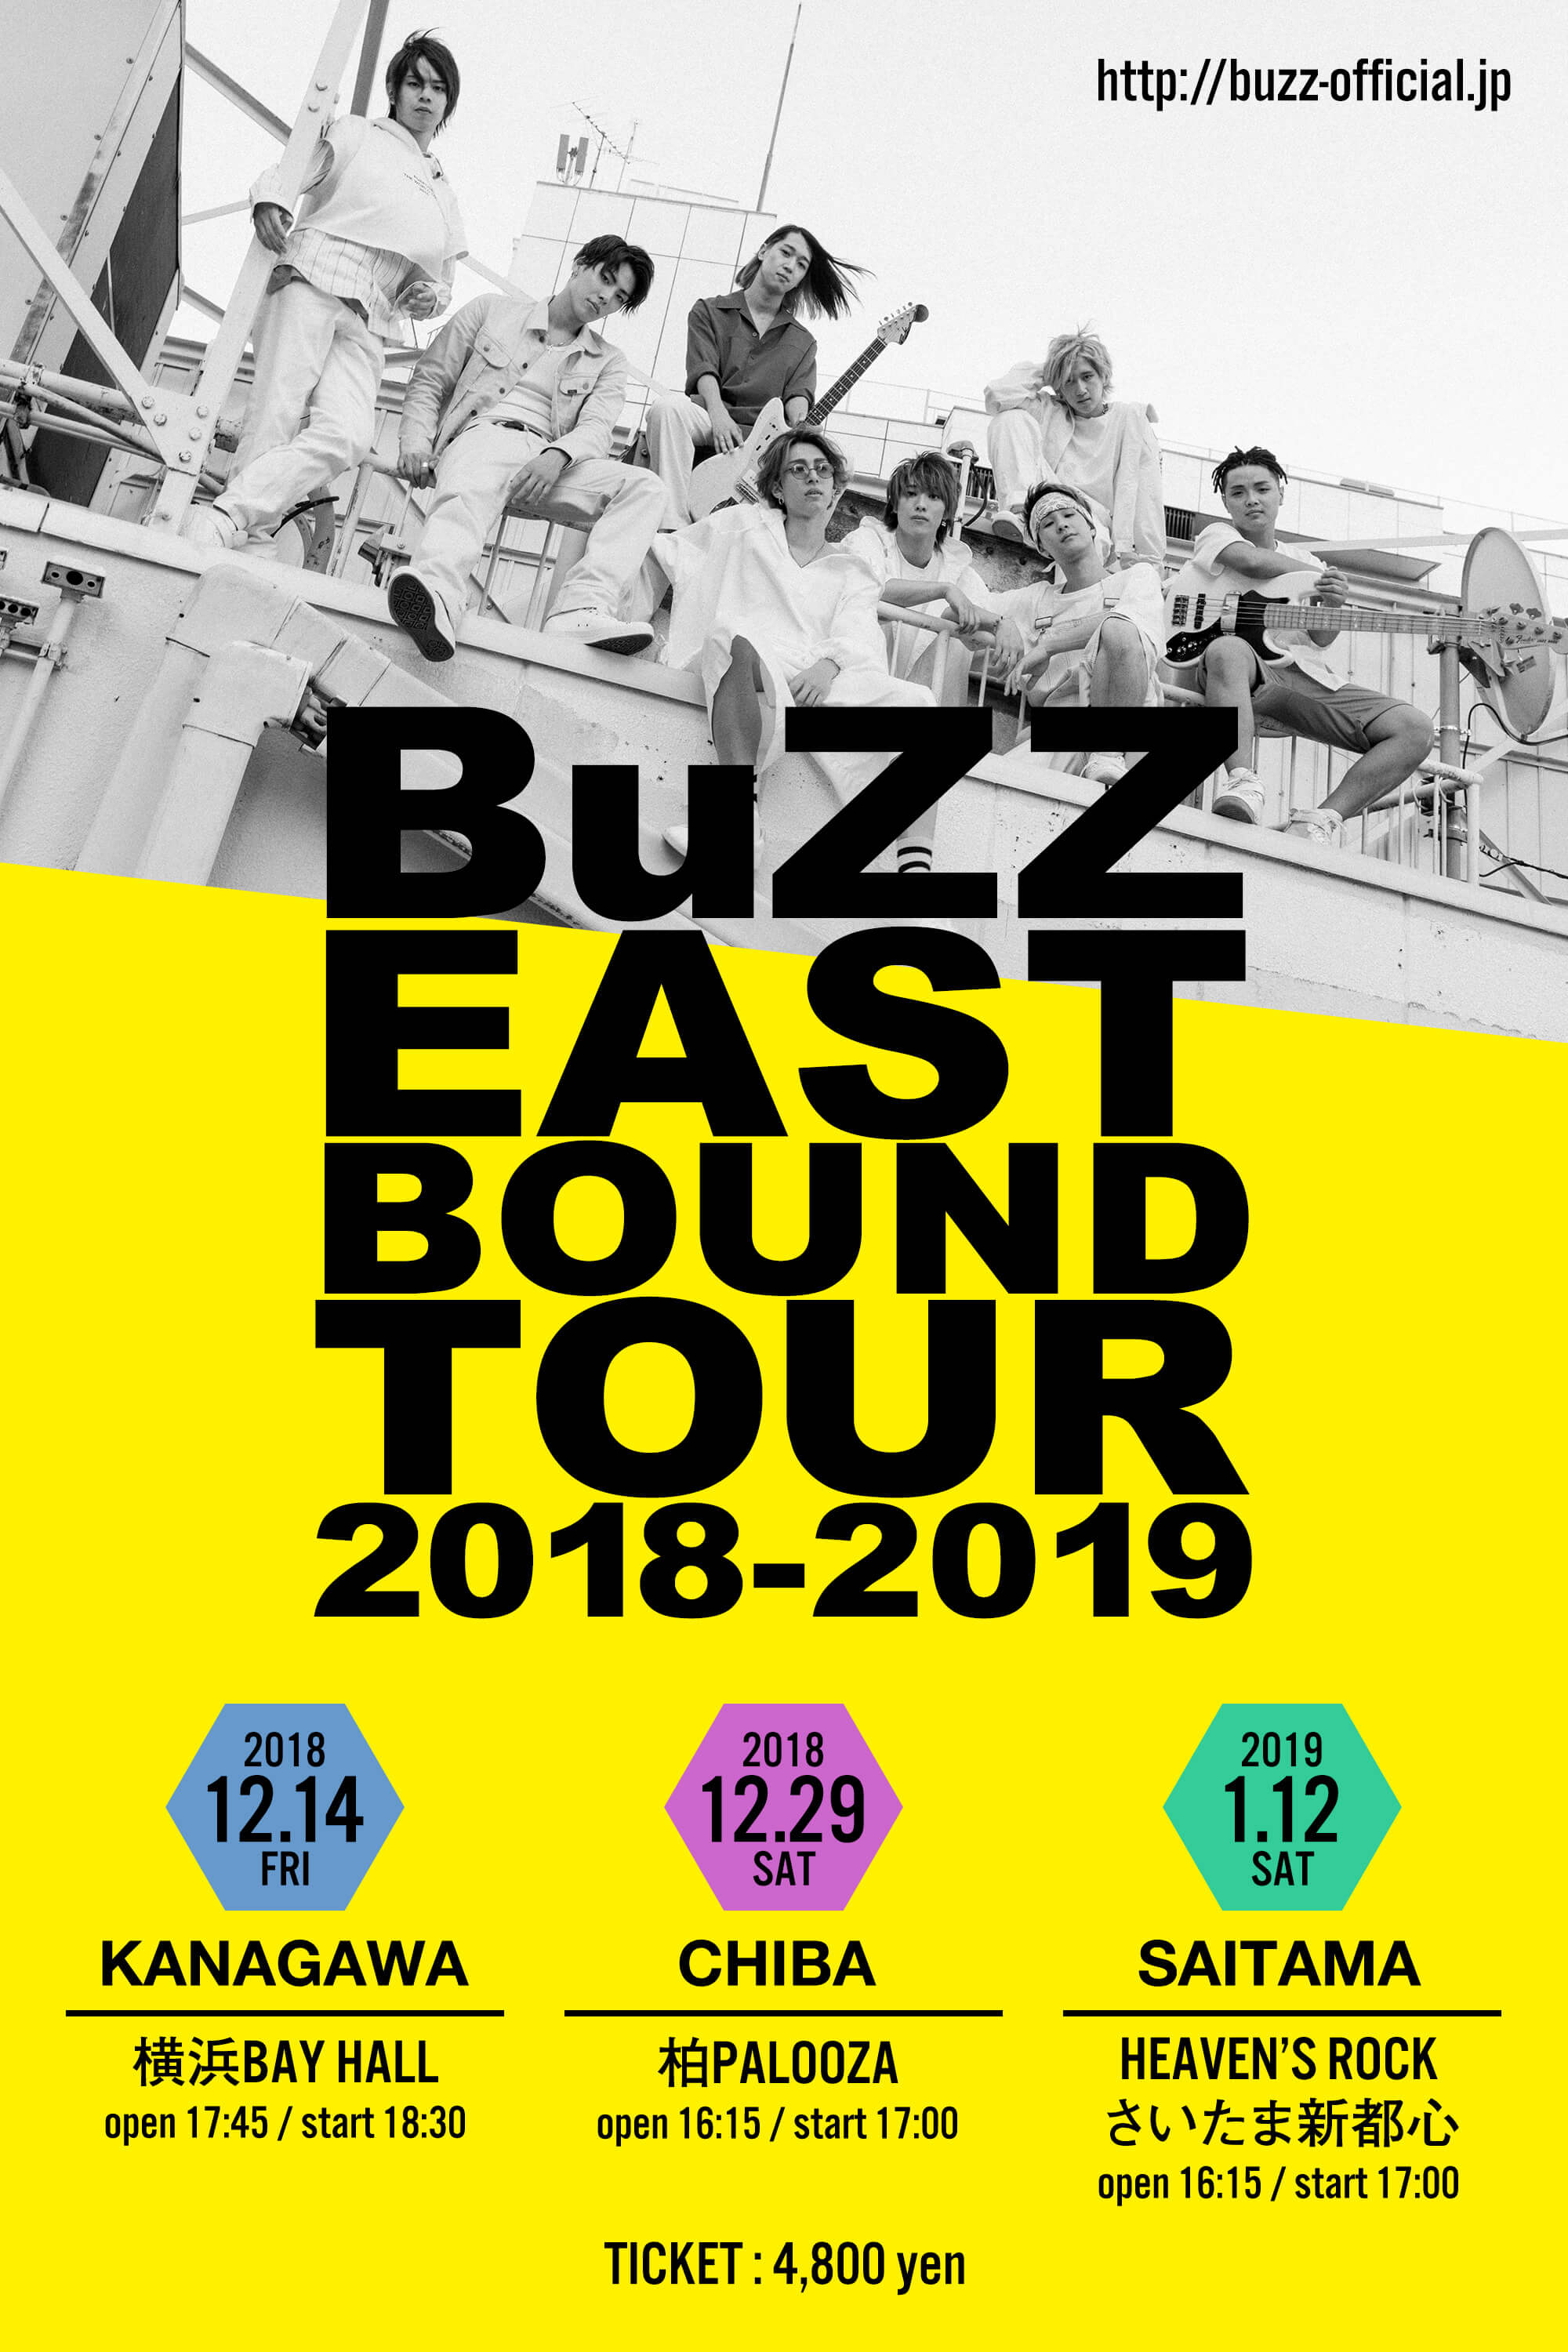 BuZZ - BuZZ EAST BOUND TOUR 2018-2019